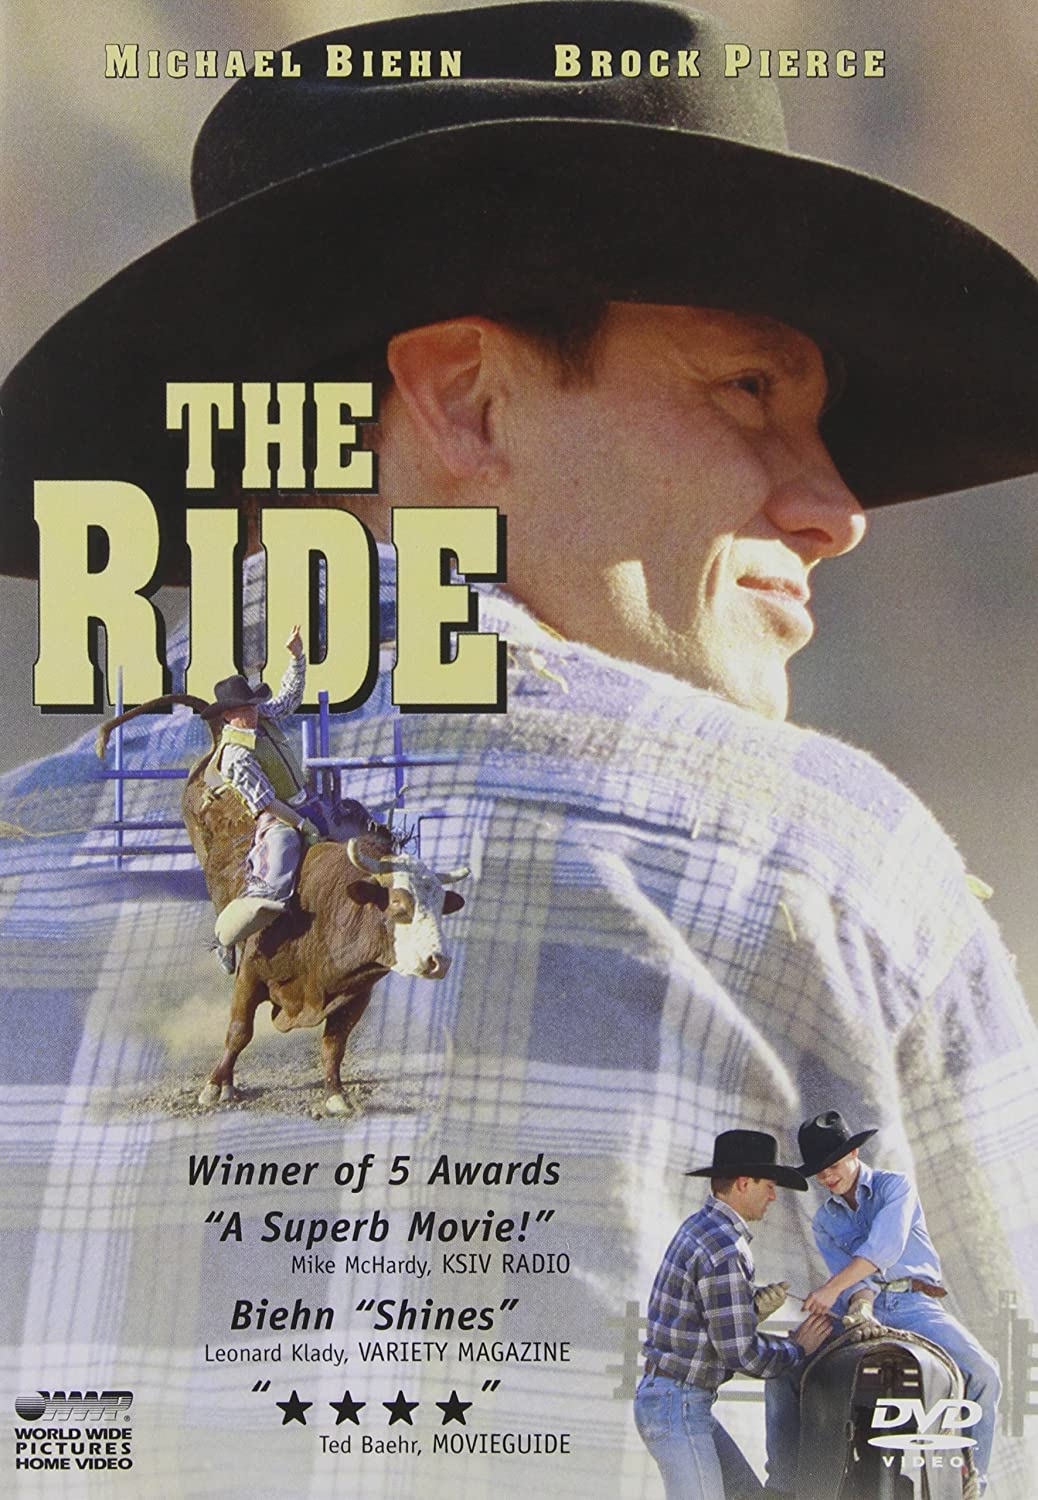 The Ride - DVD Image